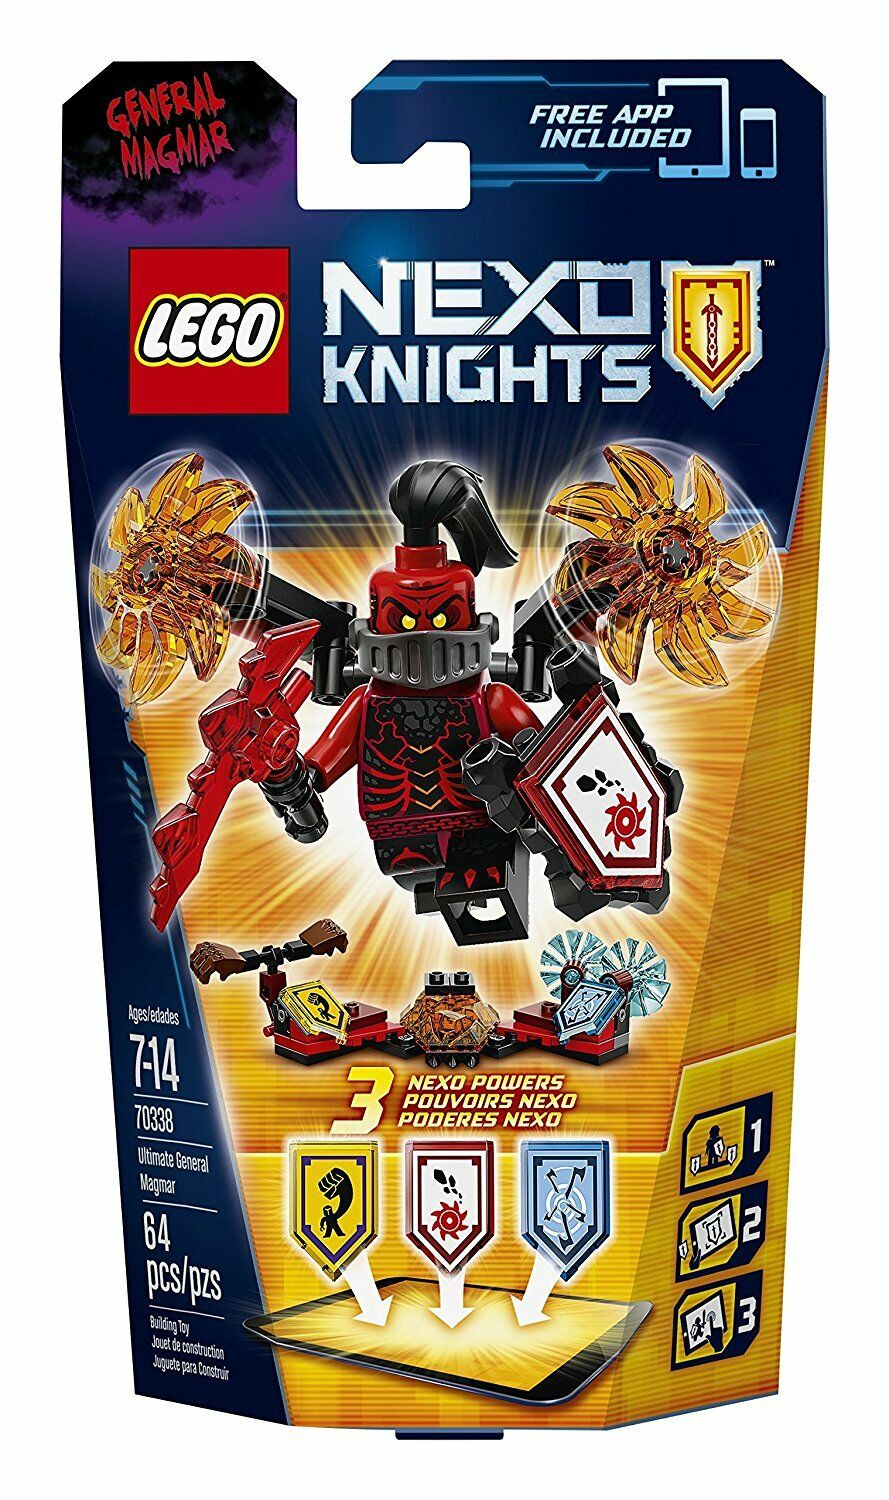 LEGO Nexo Knights 70338 Ultimate General Magmar Building Kit (64 (64 (64 Piece) 41d19e